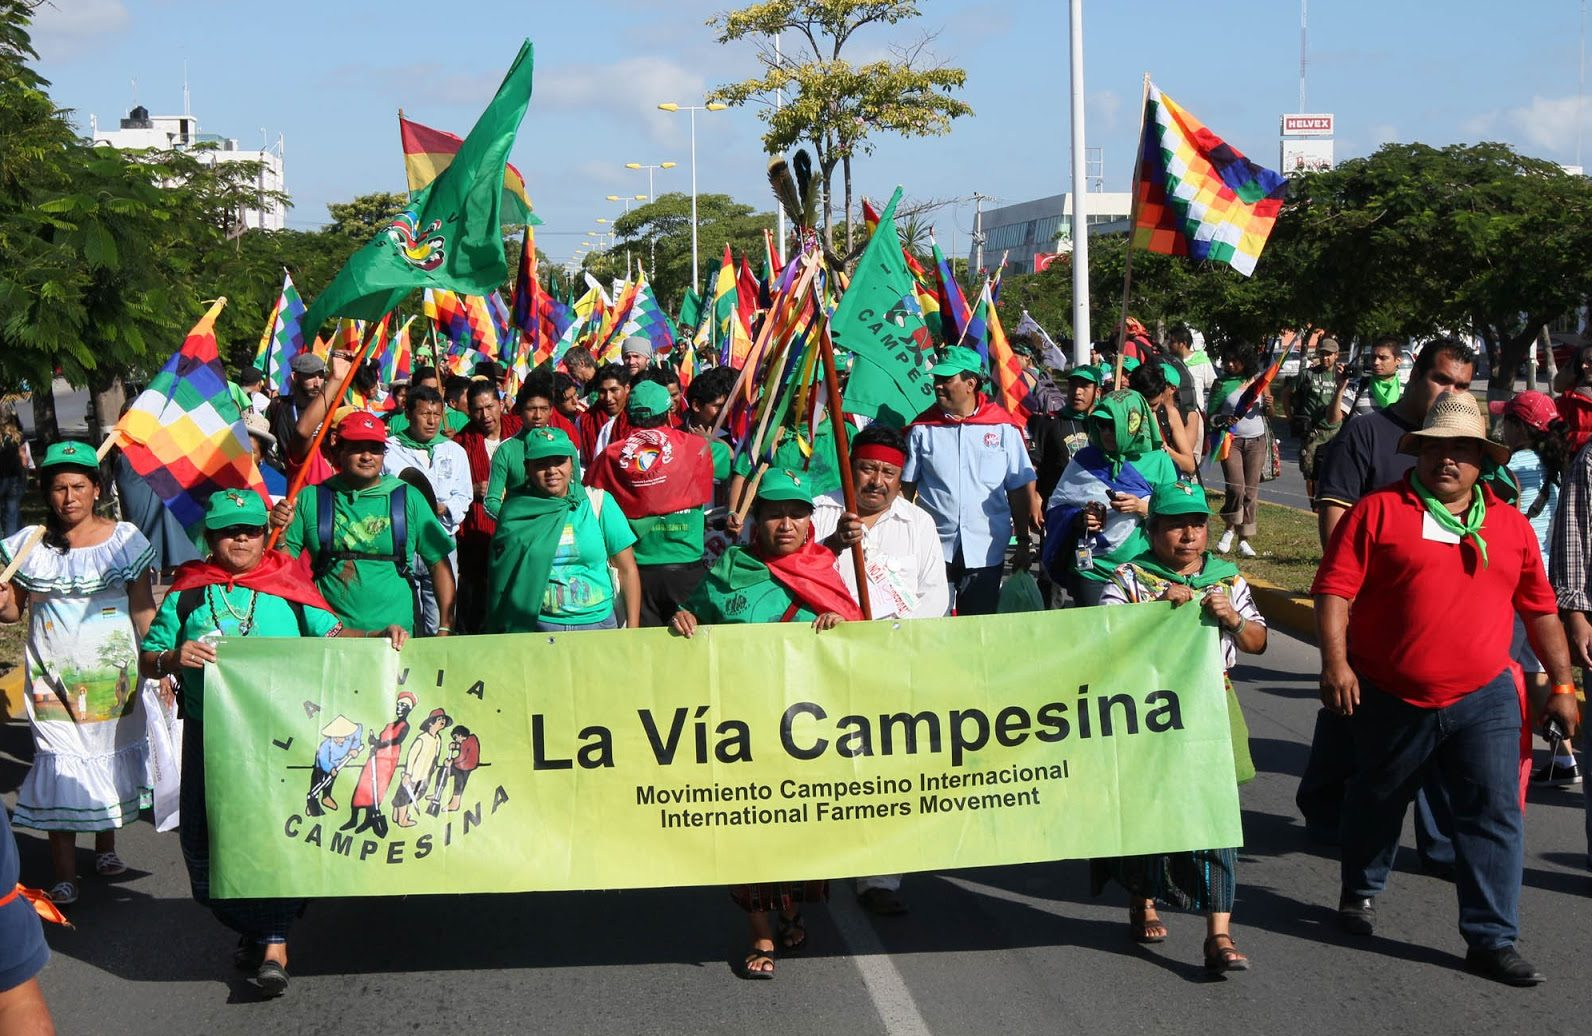 Peasant demonstration of the organization La Via Campesina